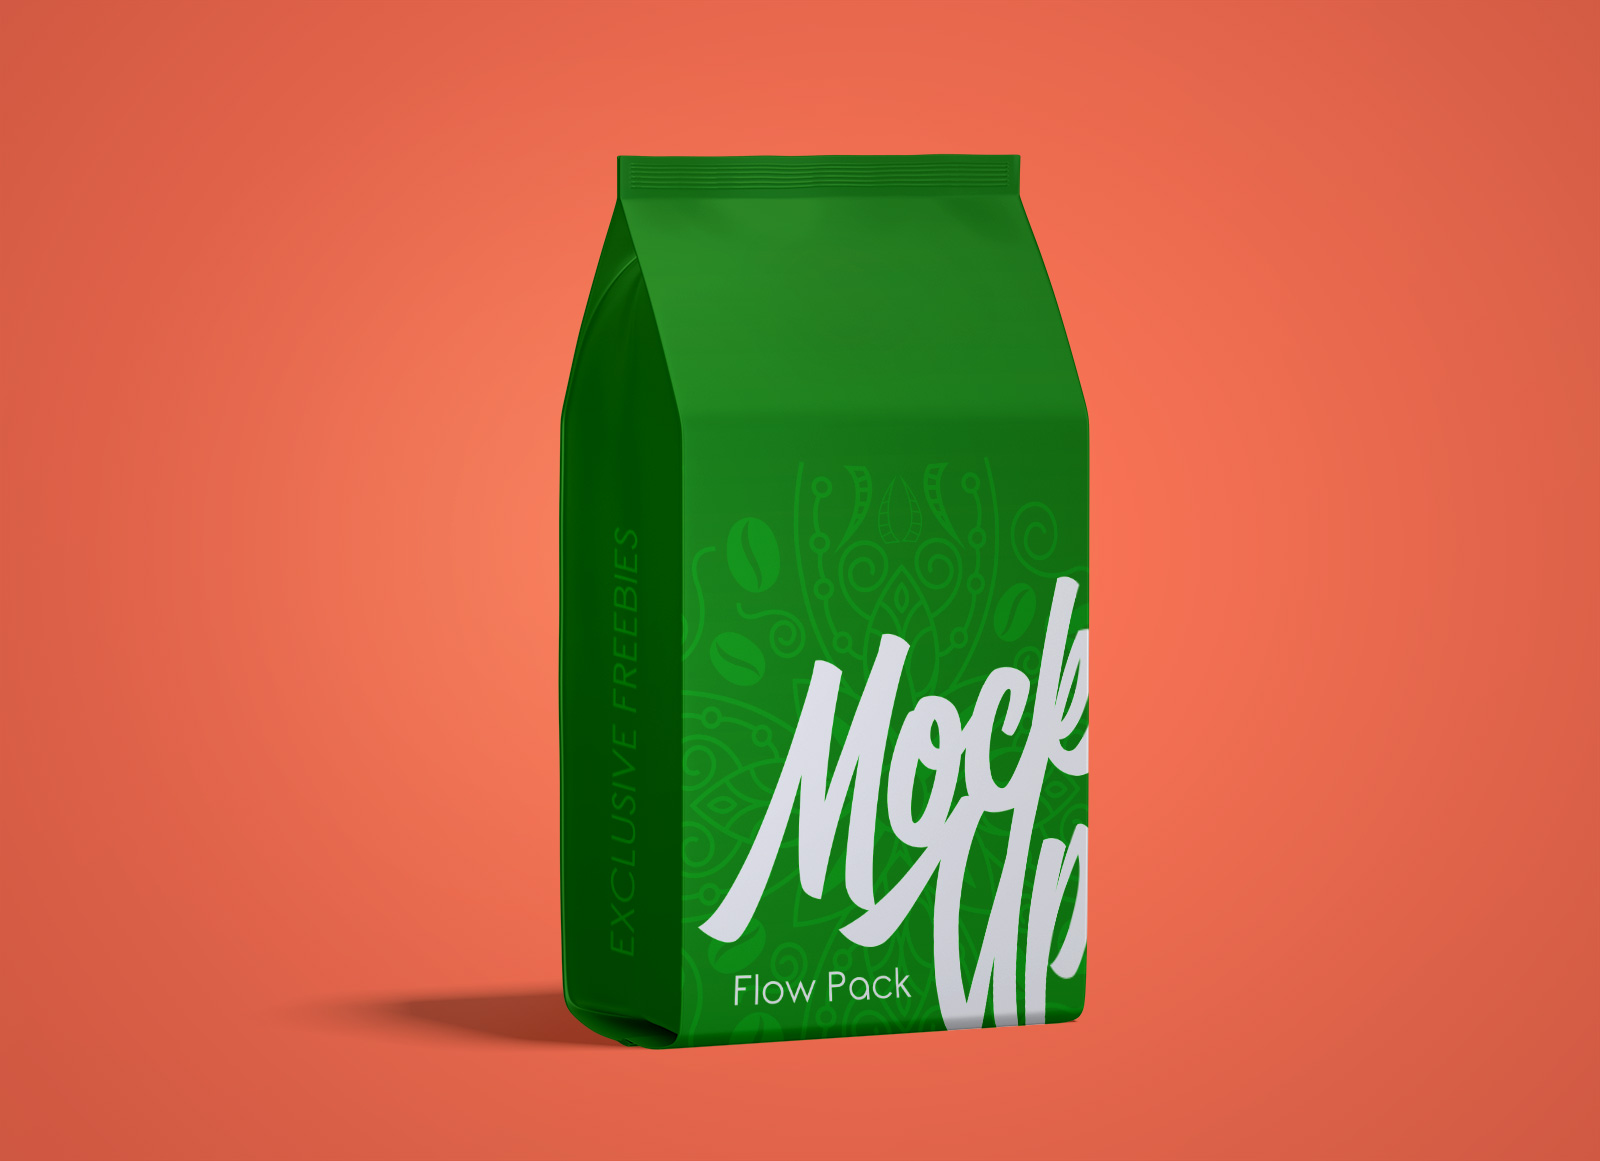 Free-Flowpack-Pouch-Packaging-Mockup-PSD